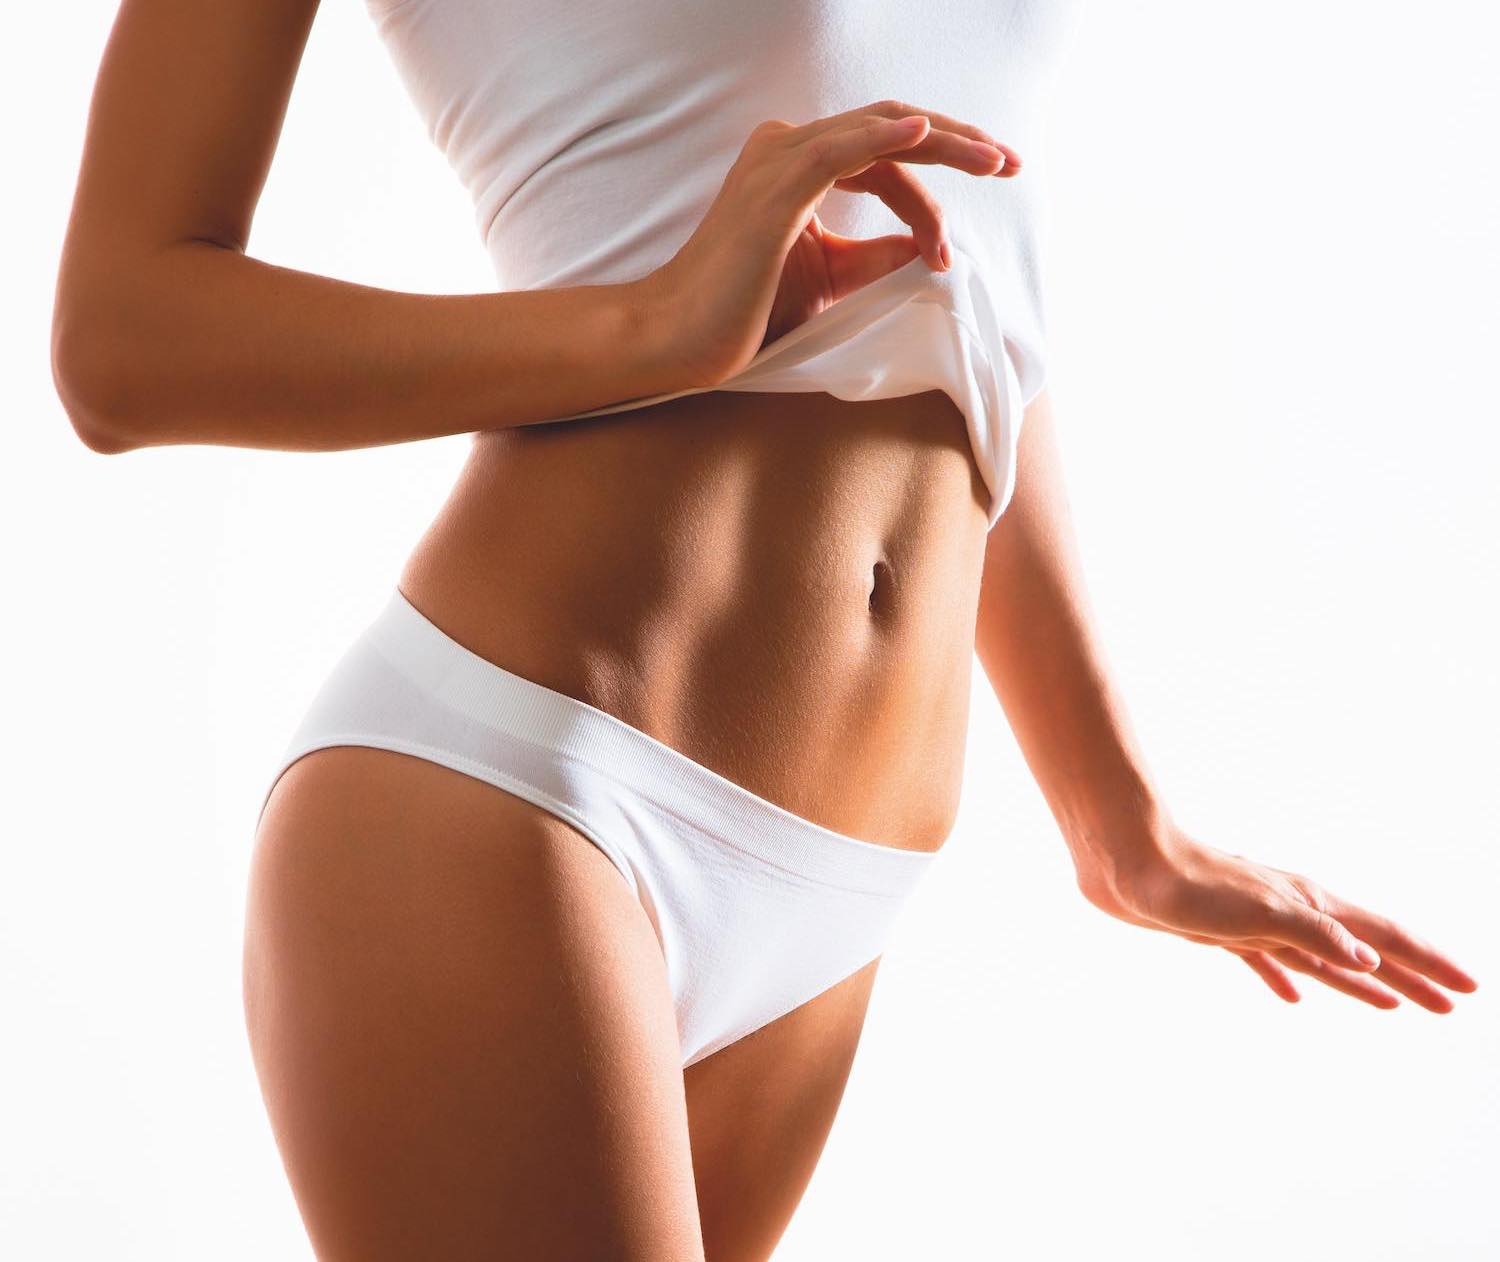 how to get rid of cellulite on stomach with body wraps that works